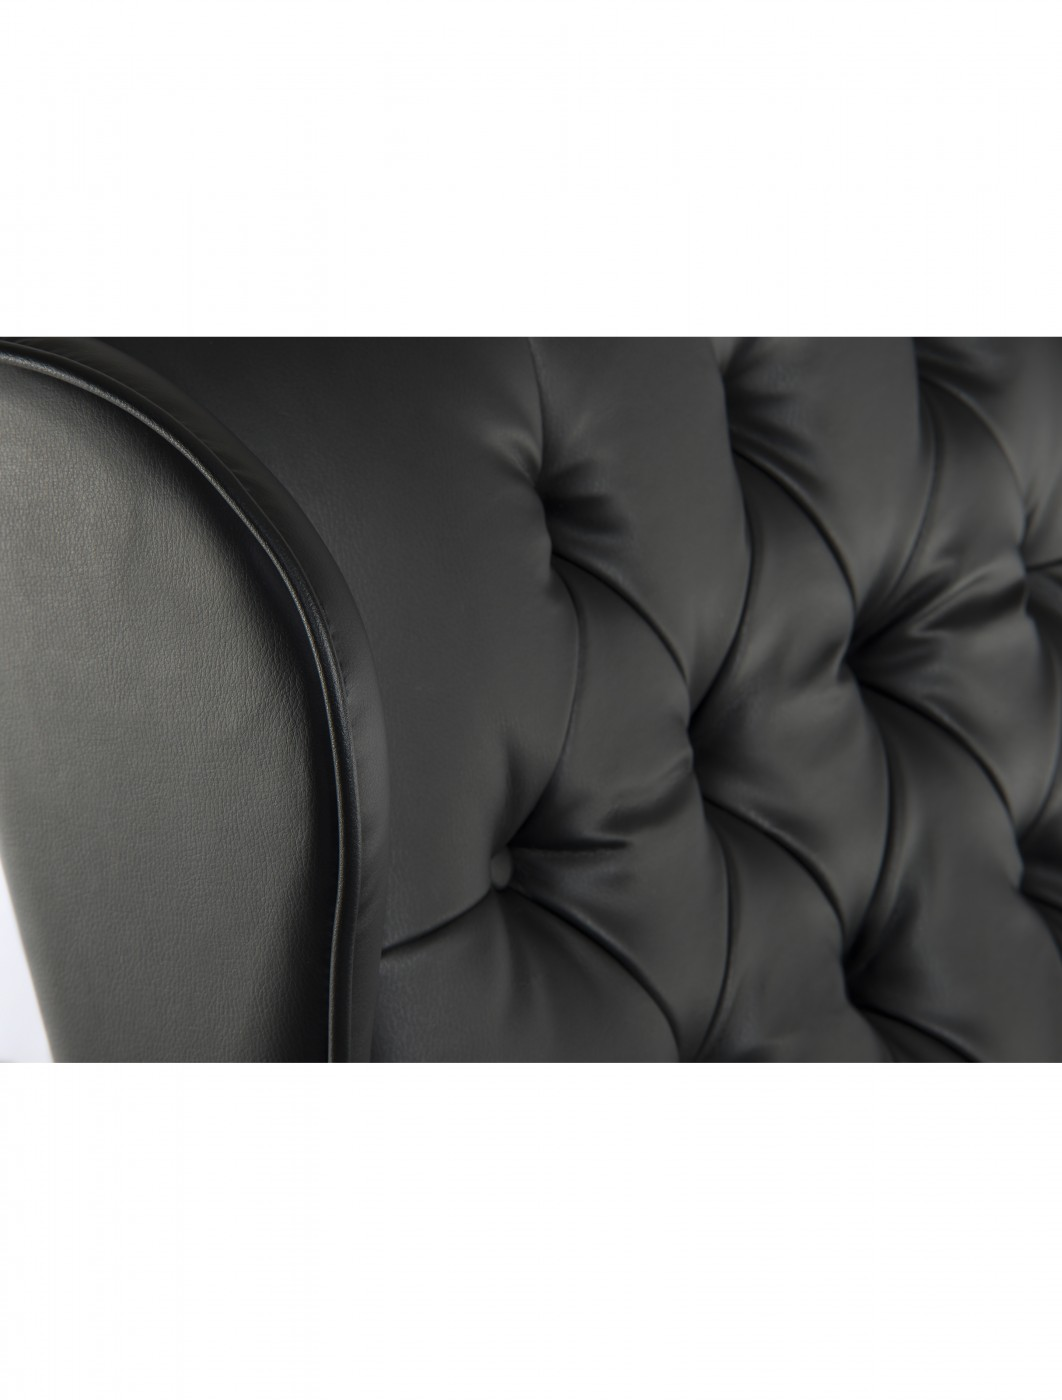 leather office couch. Teknik Chairman Noir Executive Leather Chair B800 - Enlarged View Office Couch H